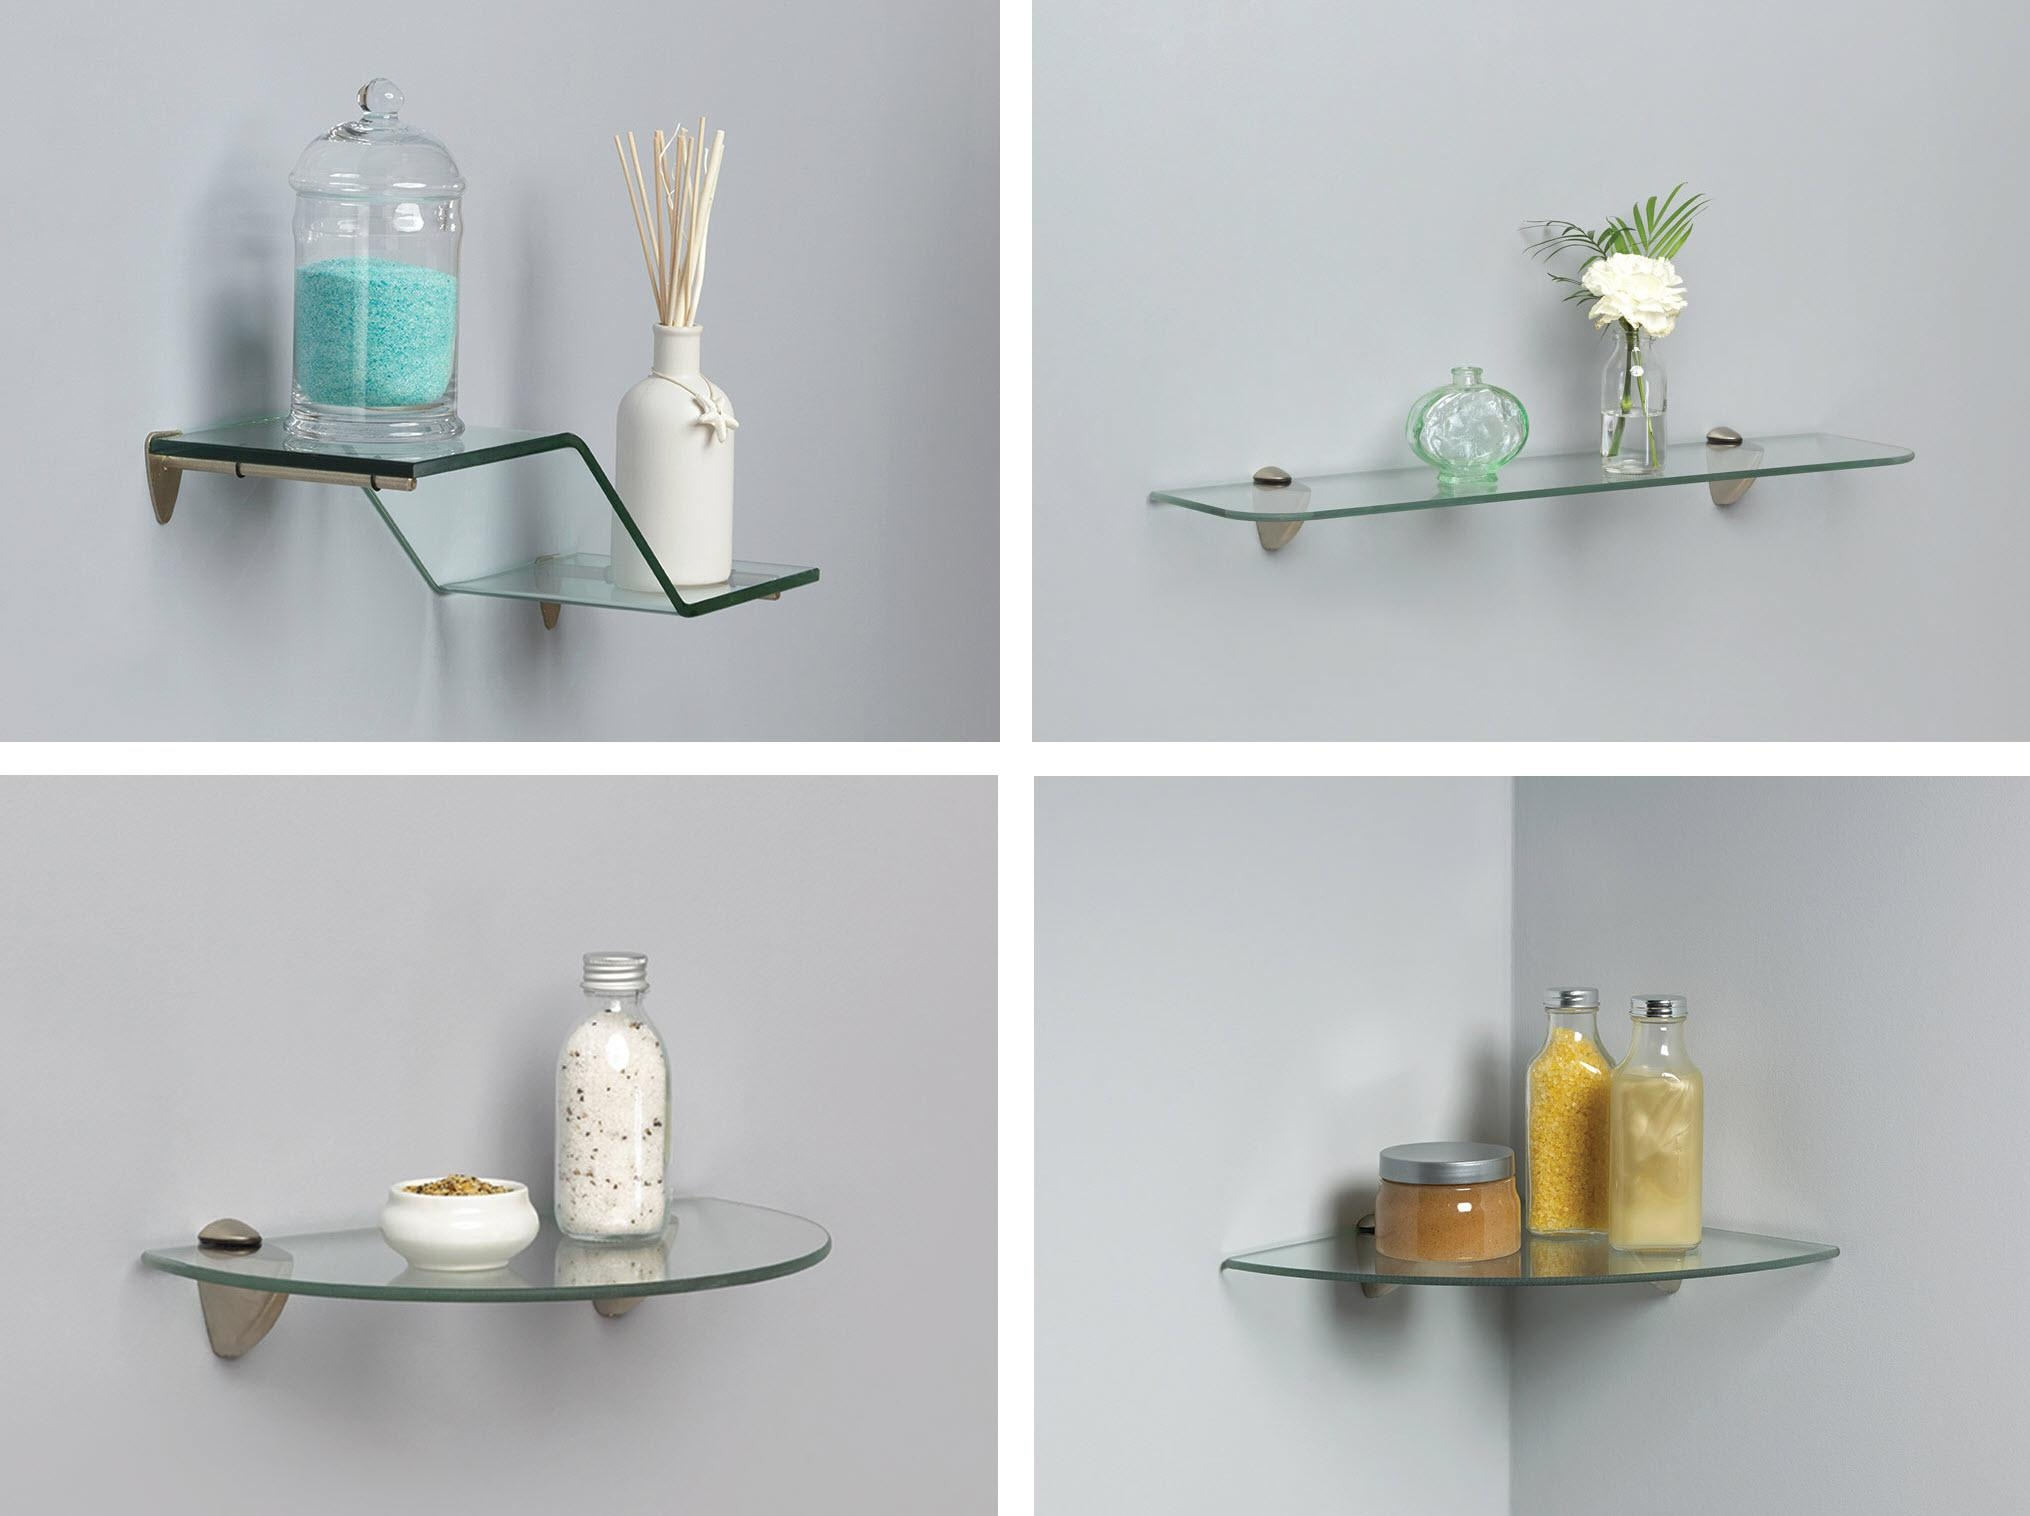 Amazon John Sterling Shelf Made Kt 0134 1212sn Glass Corner Throughout Glass Corner Shelves (View 2 of 15)